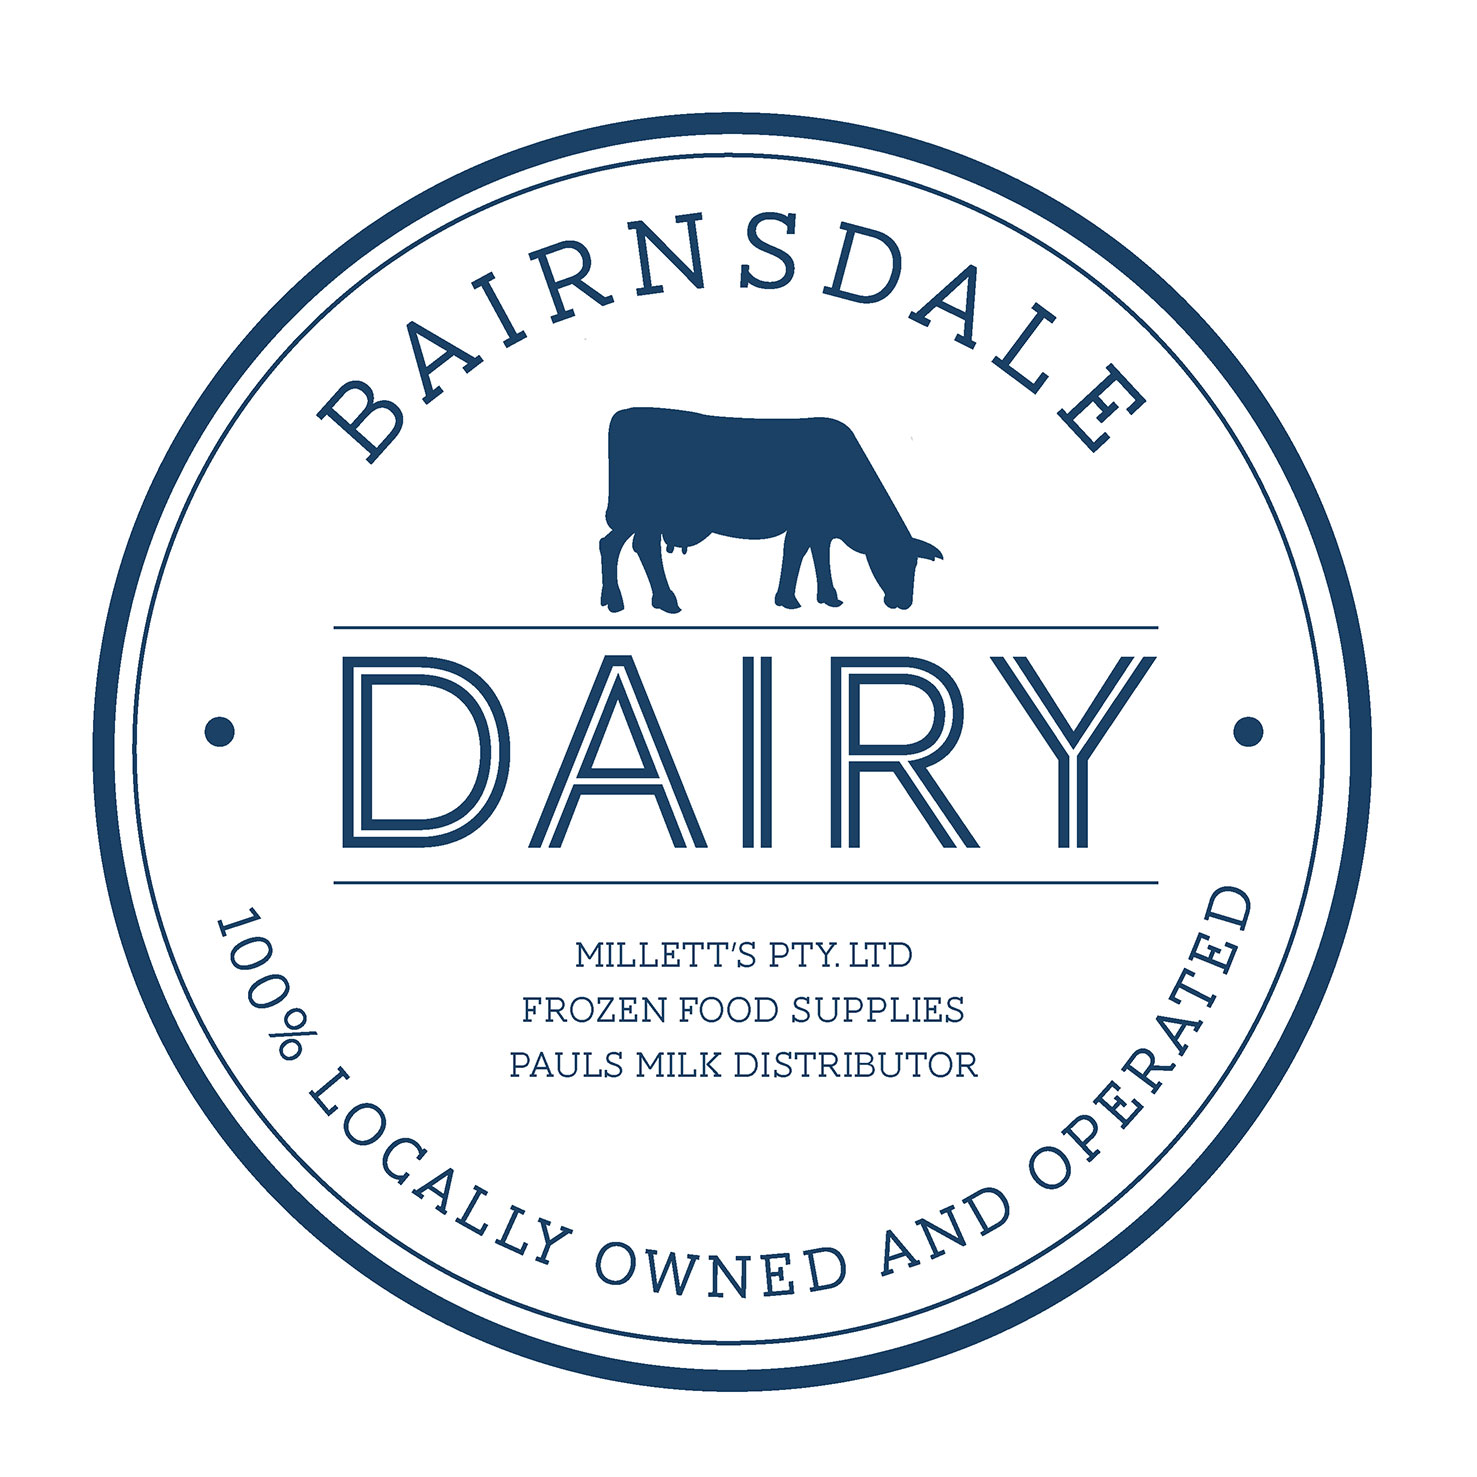 Bairnsdale-Dairy